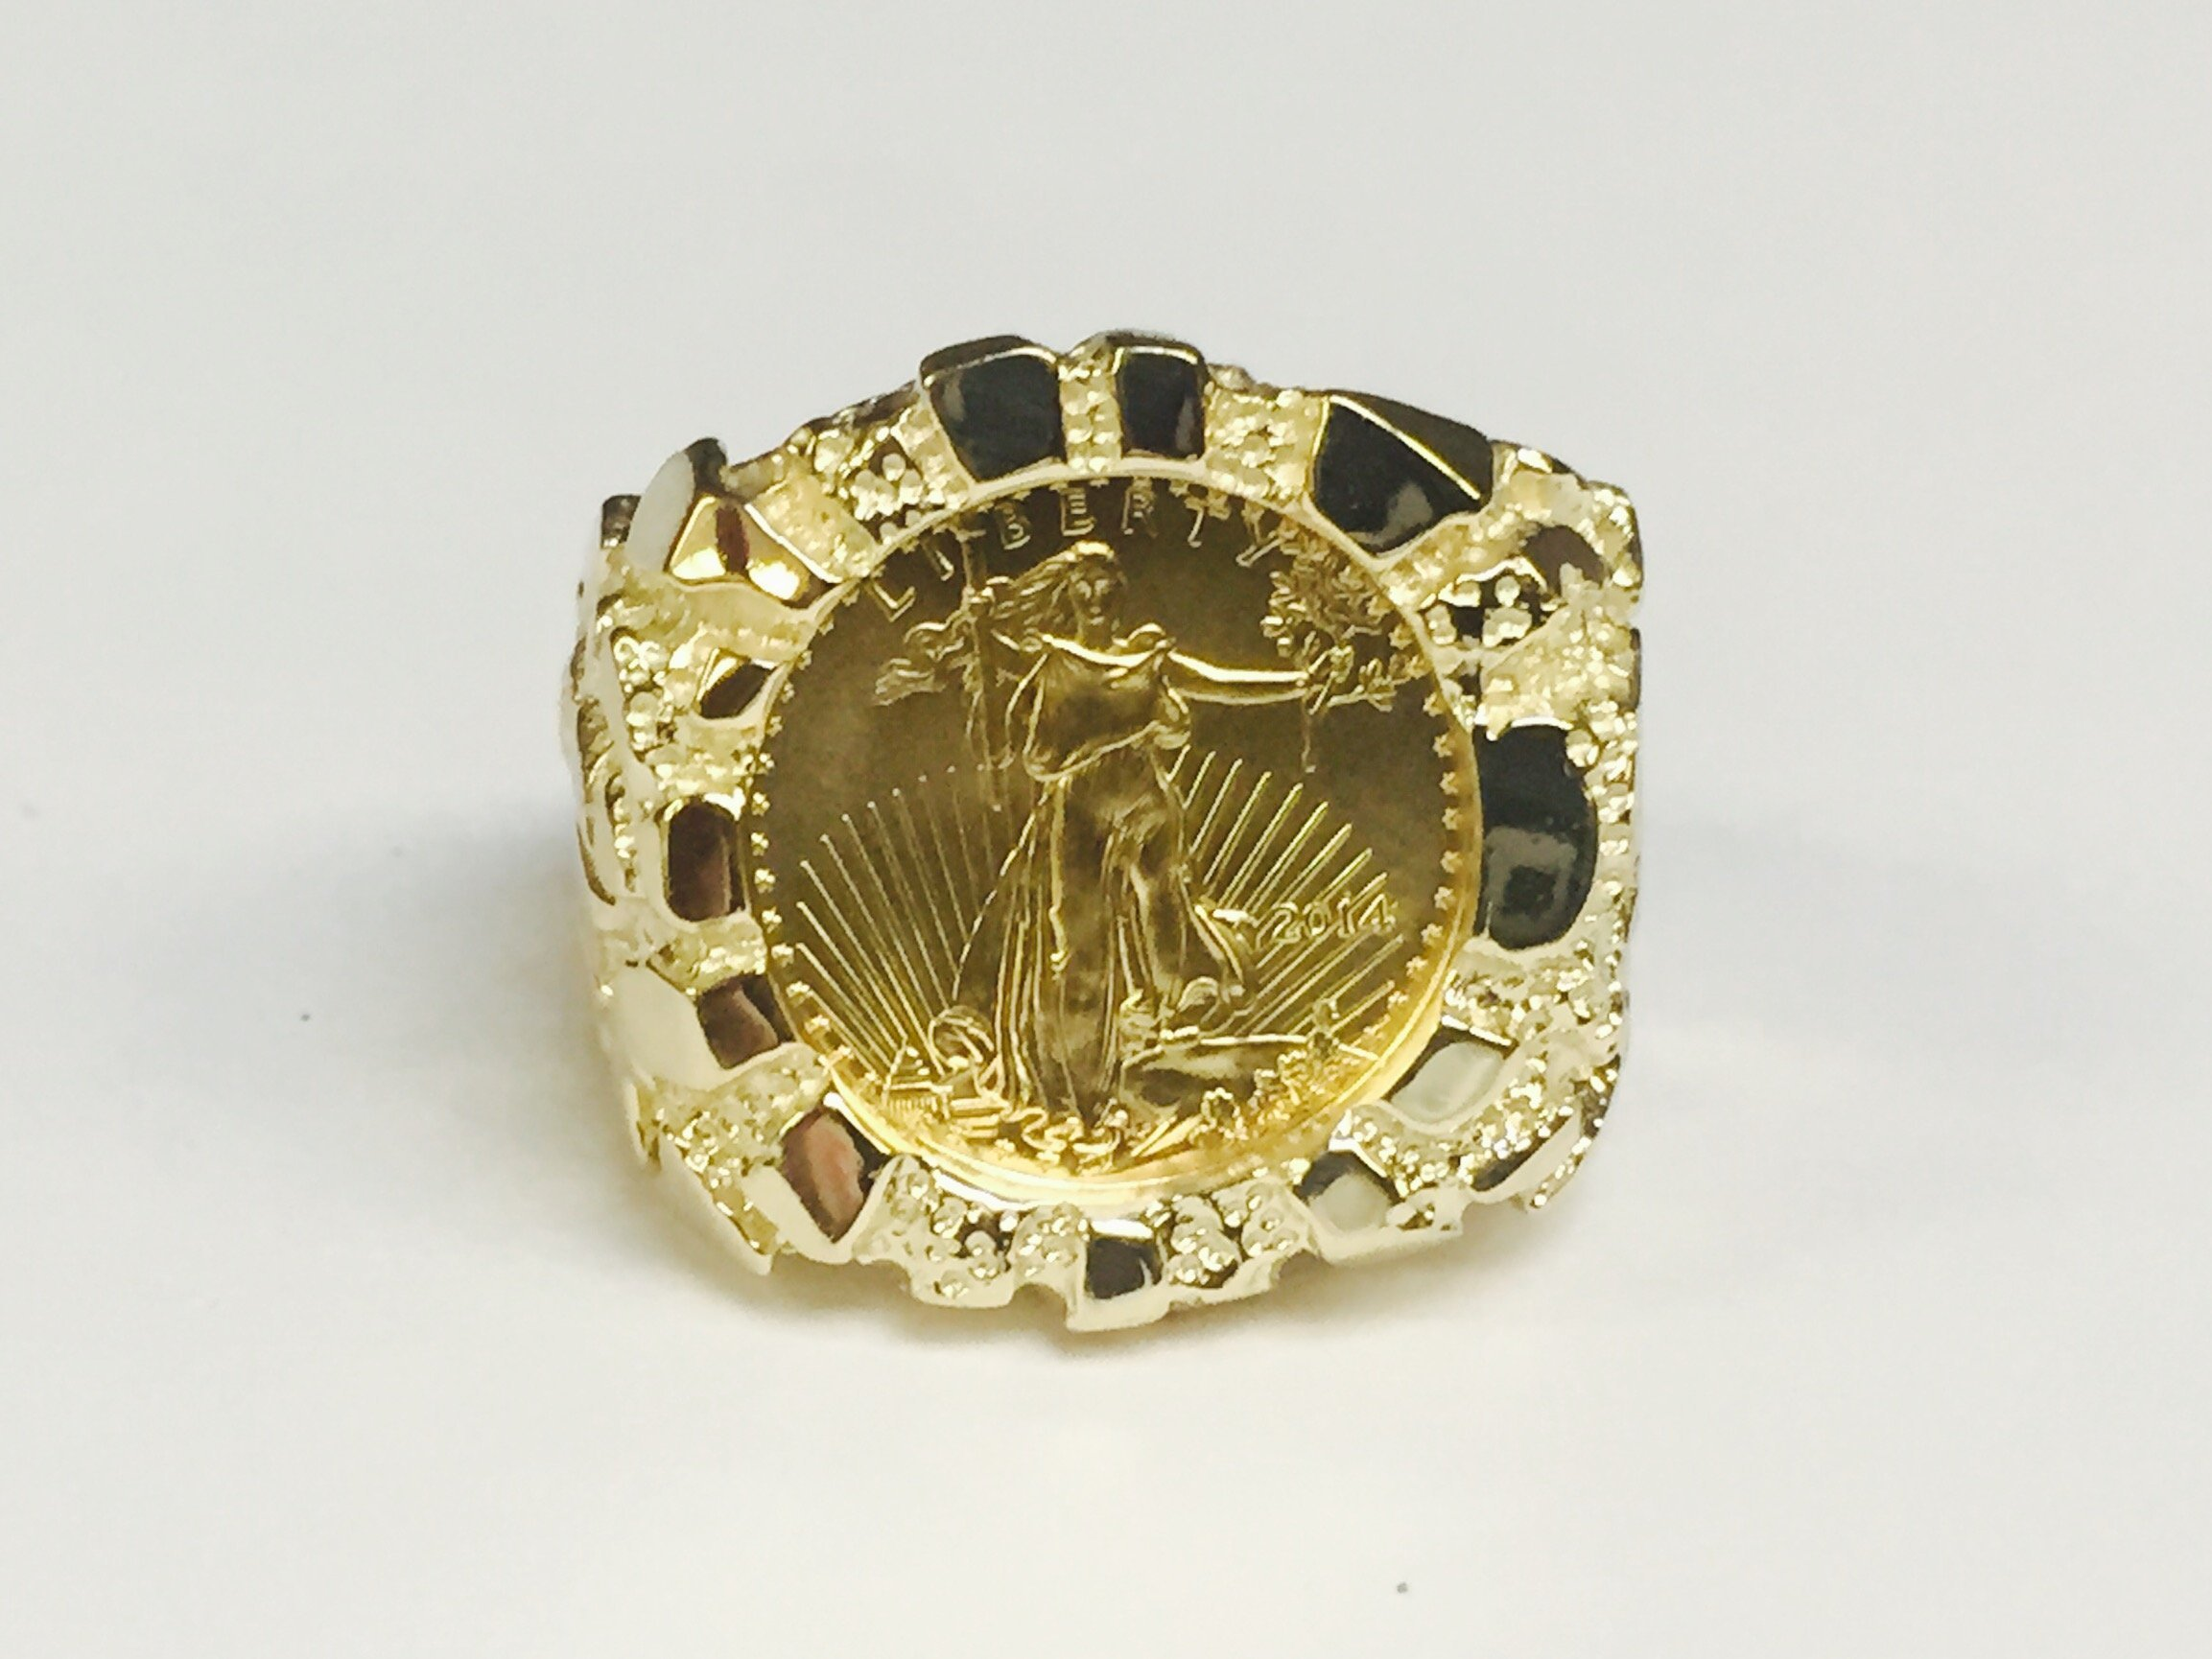 14K Gold Men'S 21 Mm Nugget Coin Ring With A 22 K 1/10 Oz American Eagle Coin - Random Year Coin by TEX (Image #2)